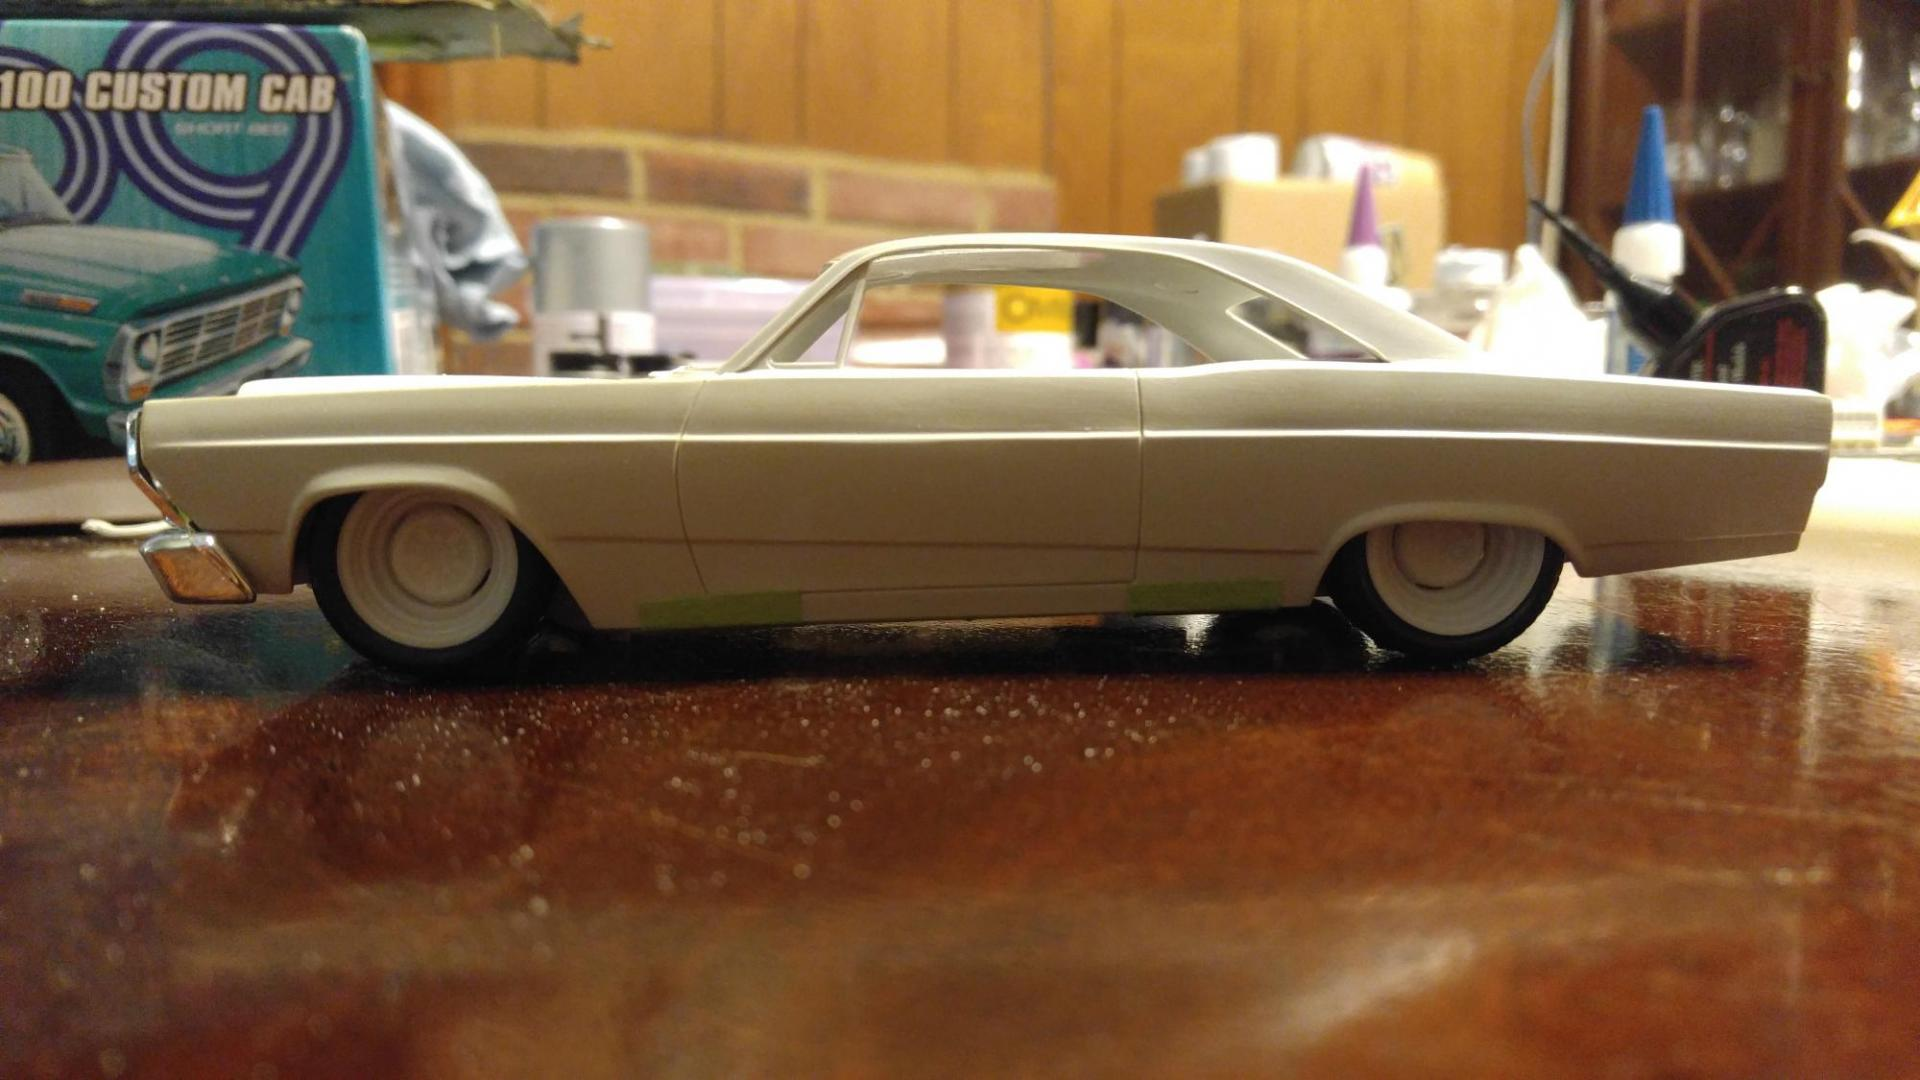 Amt 1966 Ford Fairlane Update 7 17 16 On The Workbench Model Cars Magazine Forum